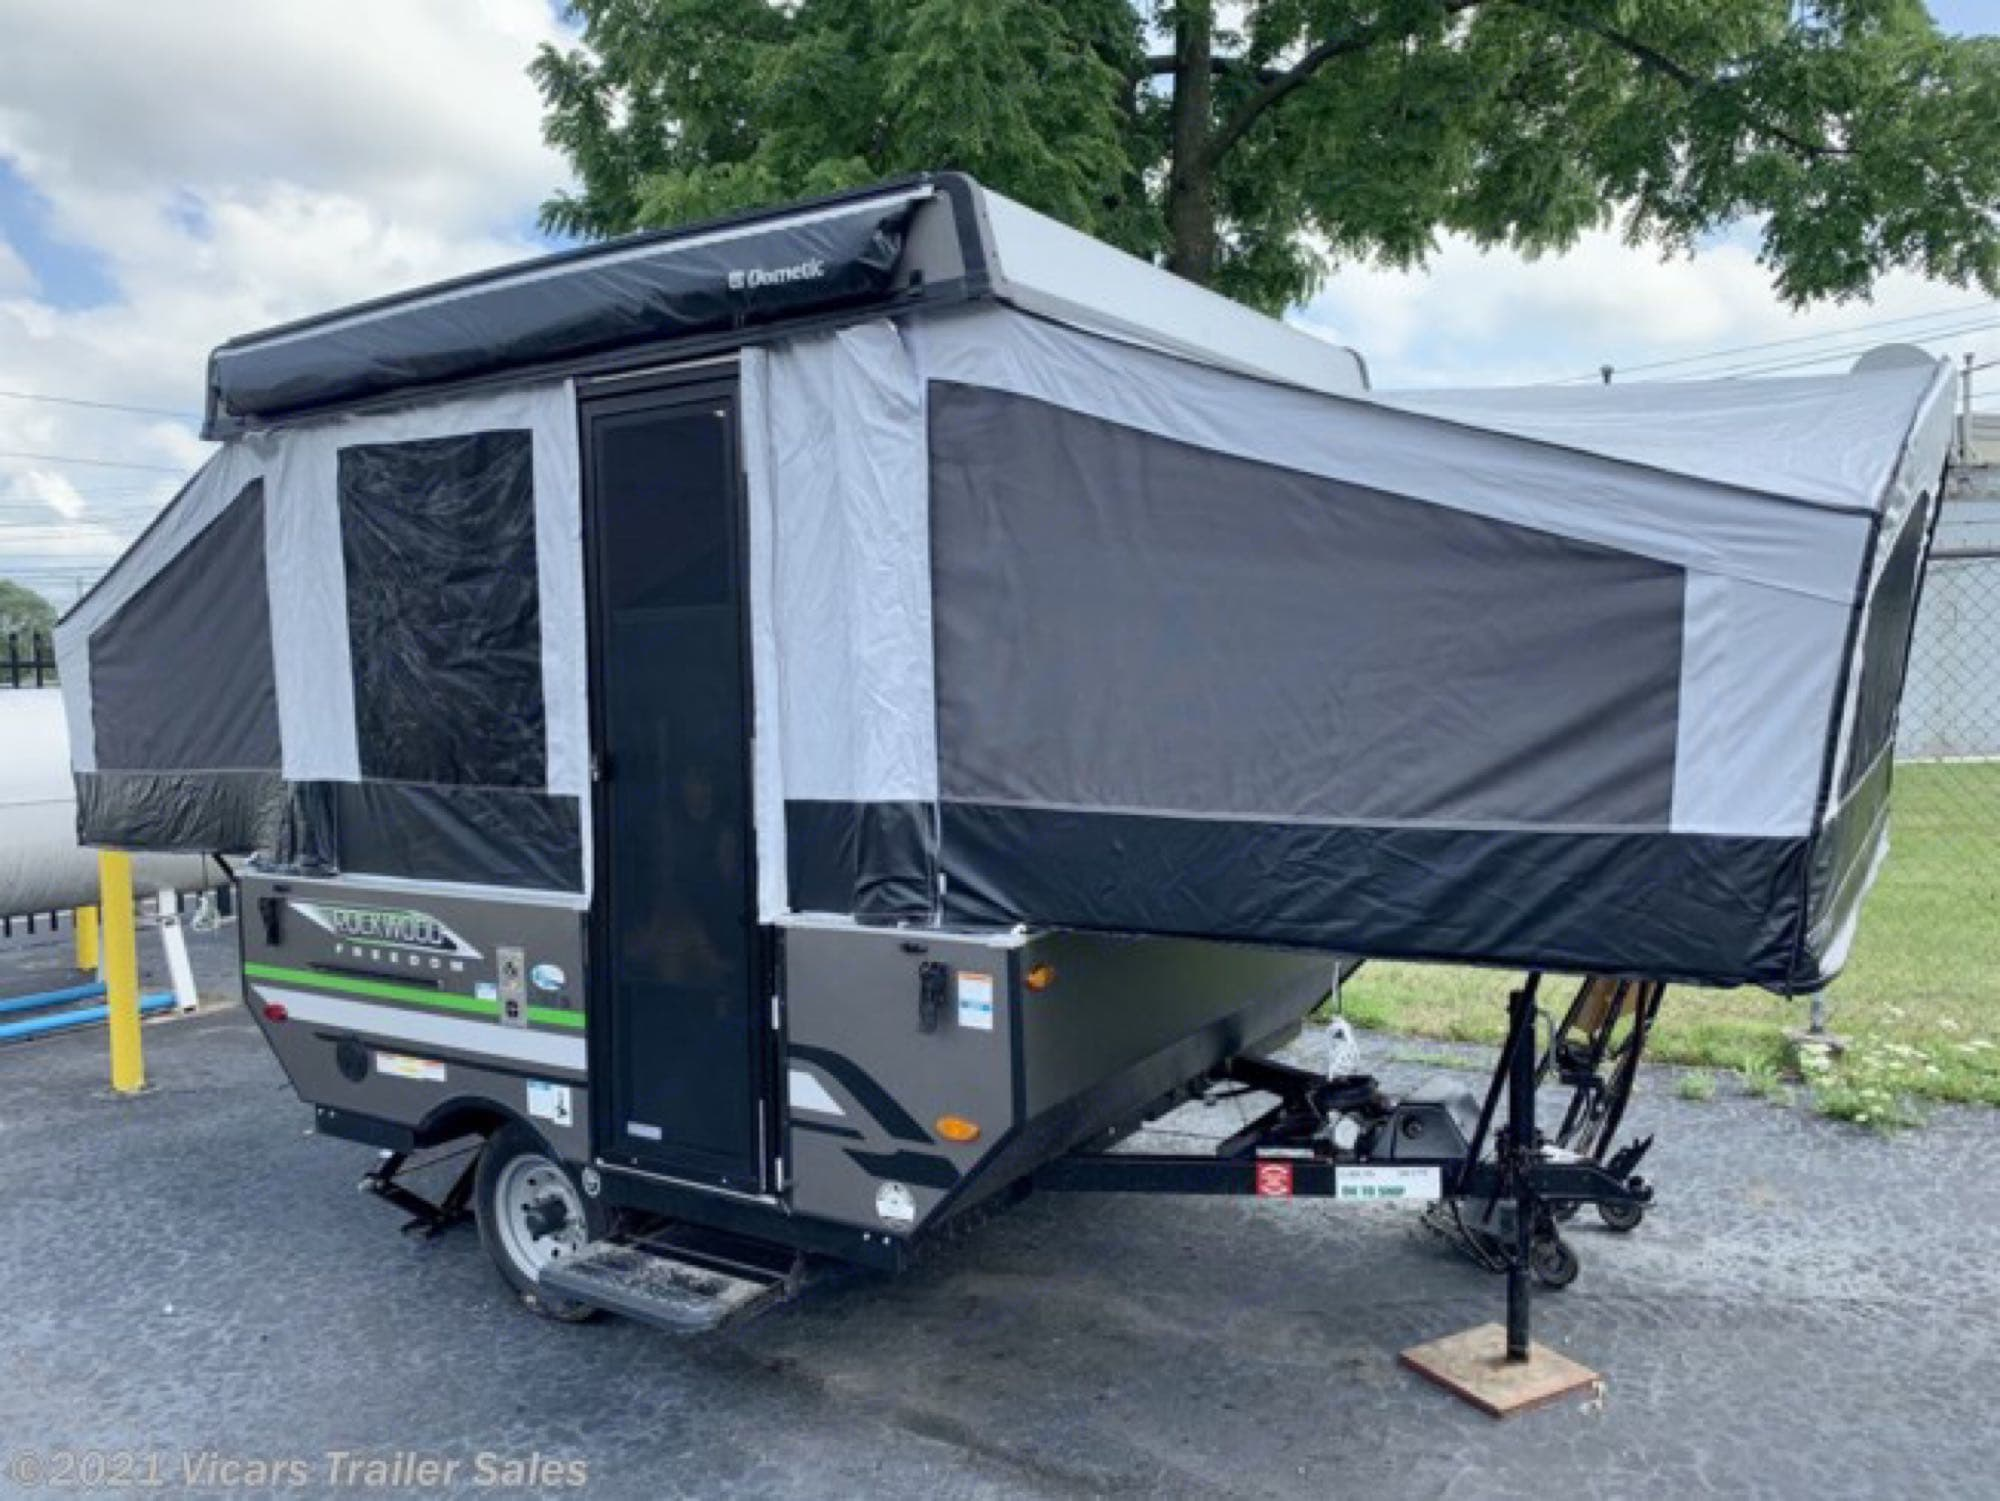 2 slides, outdoor awning, leveling jacks. Forest River Rockwood Lite 2020